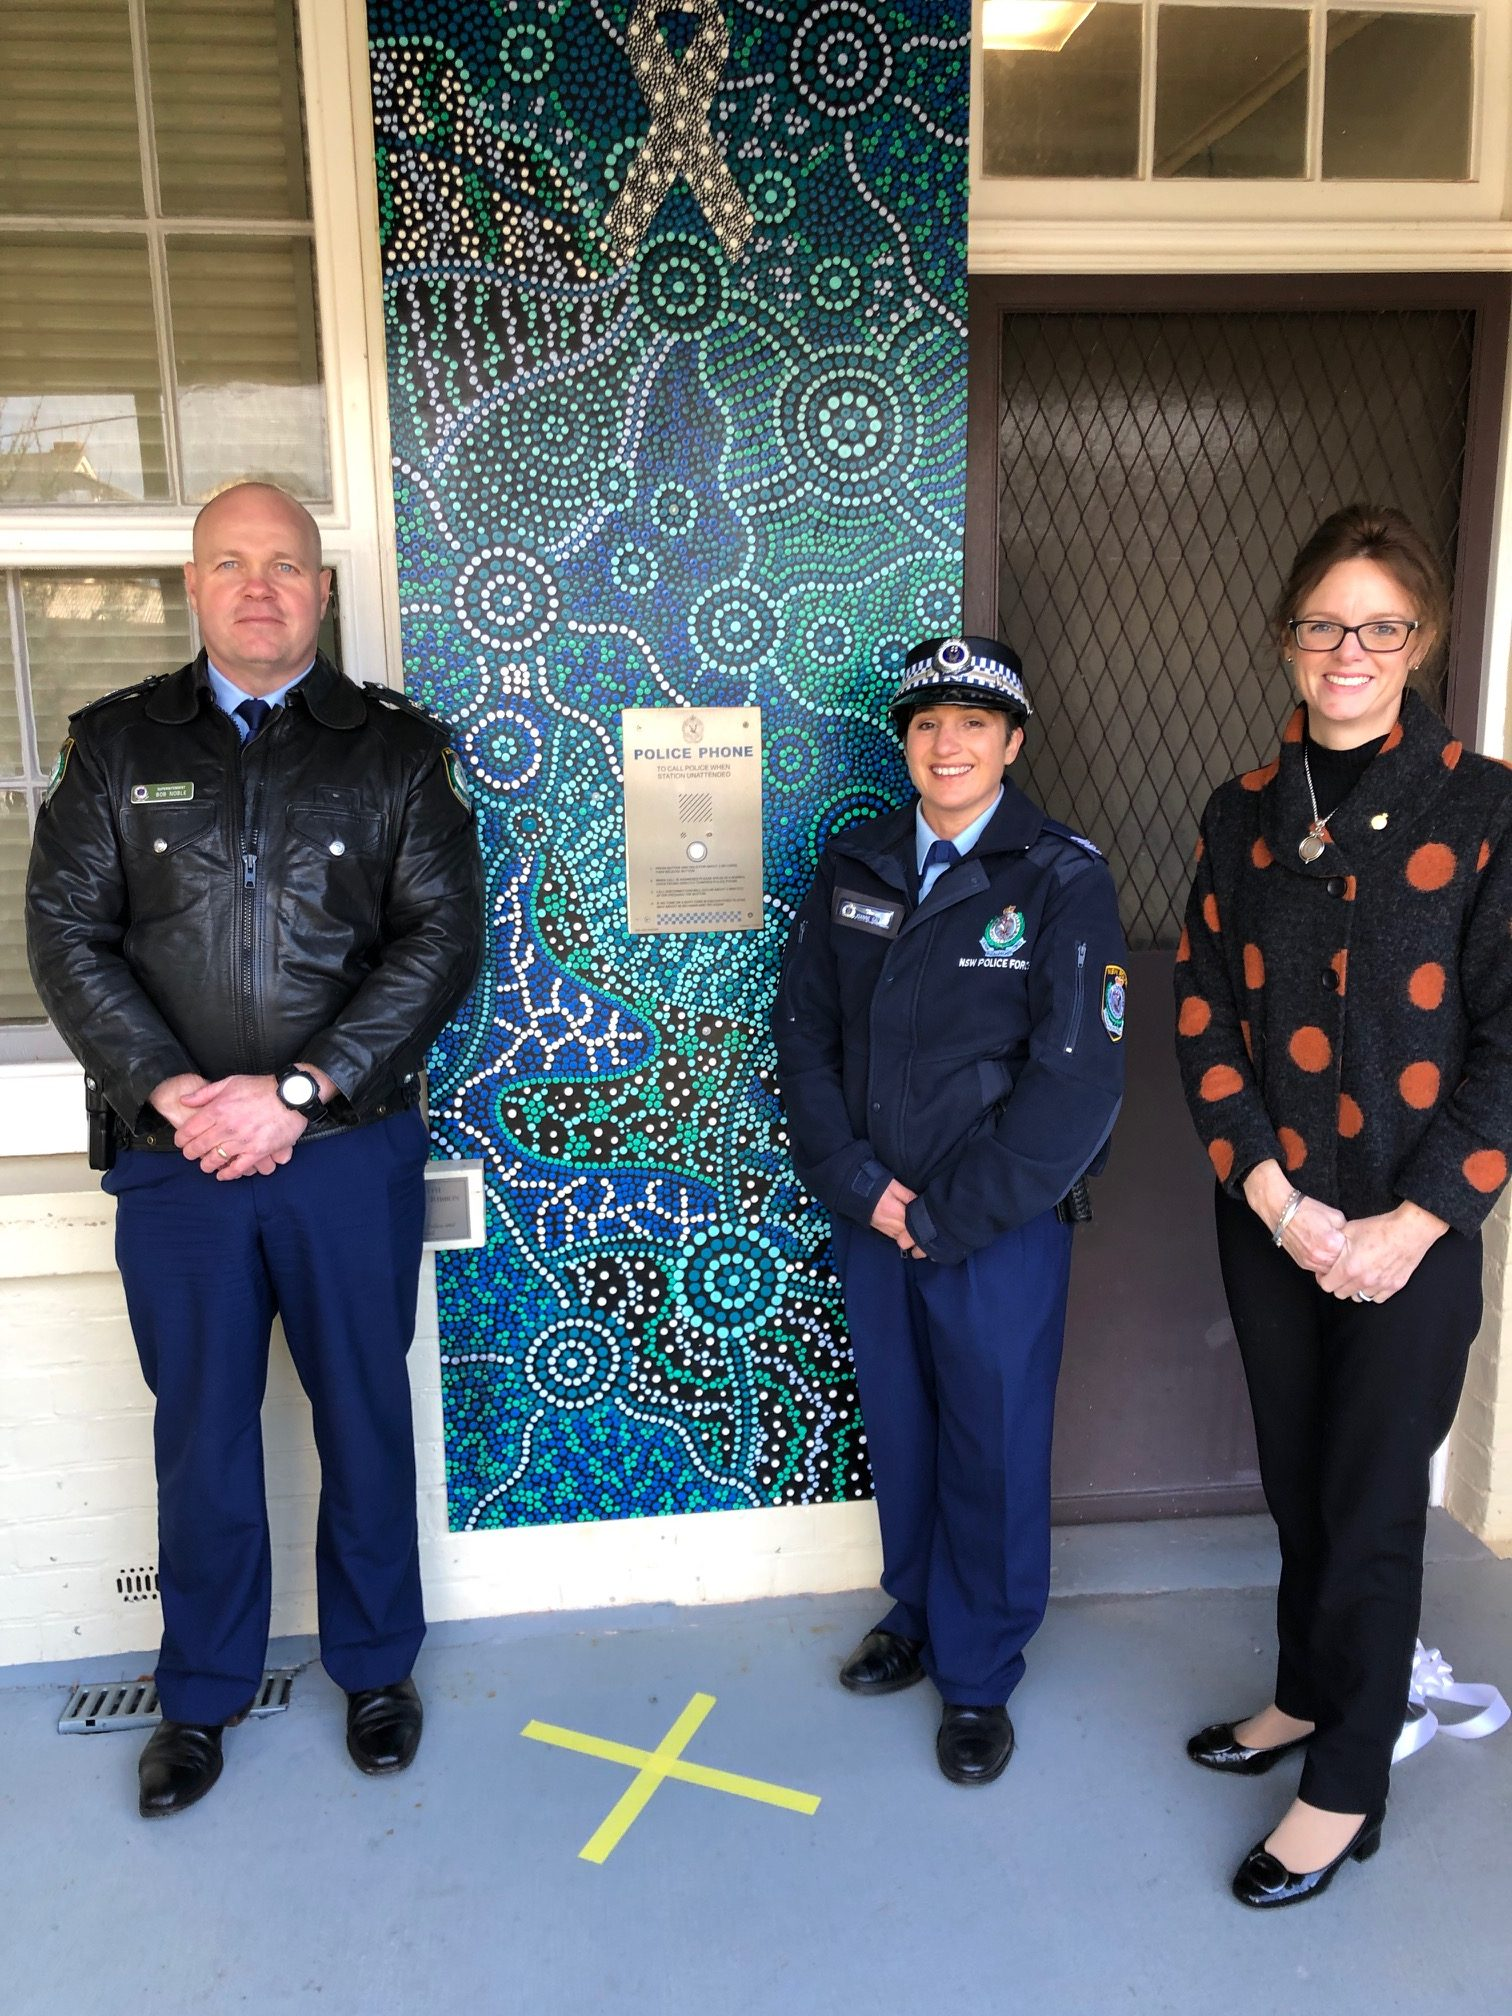 Superintendent Bob Noble, Sergeant Joanne Gallant and Steph Cooke MP stand in front of the blue, black and white indigenous artwork which features a prominent white ribbon